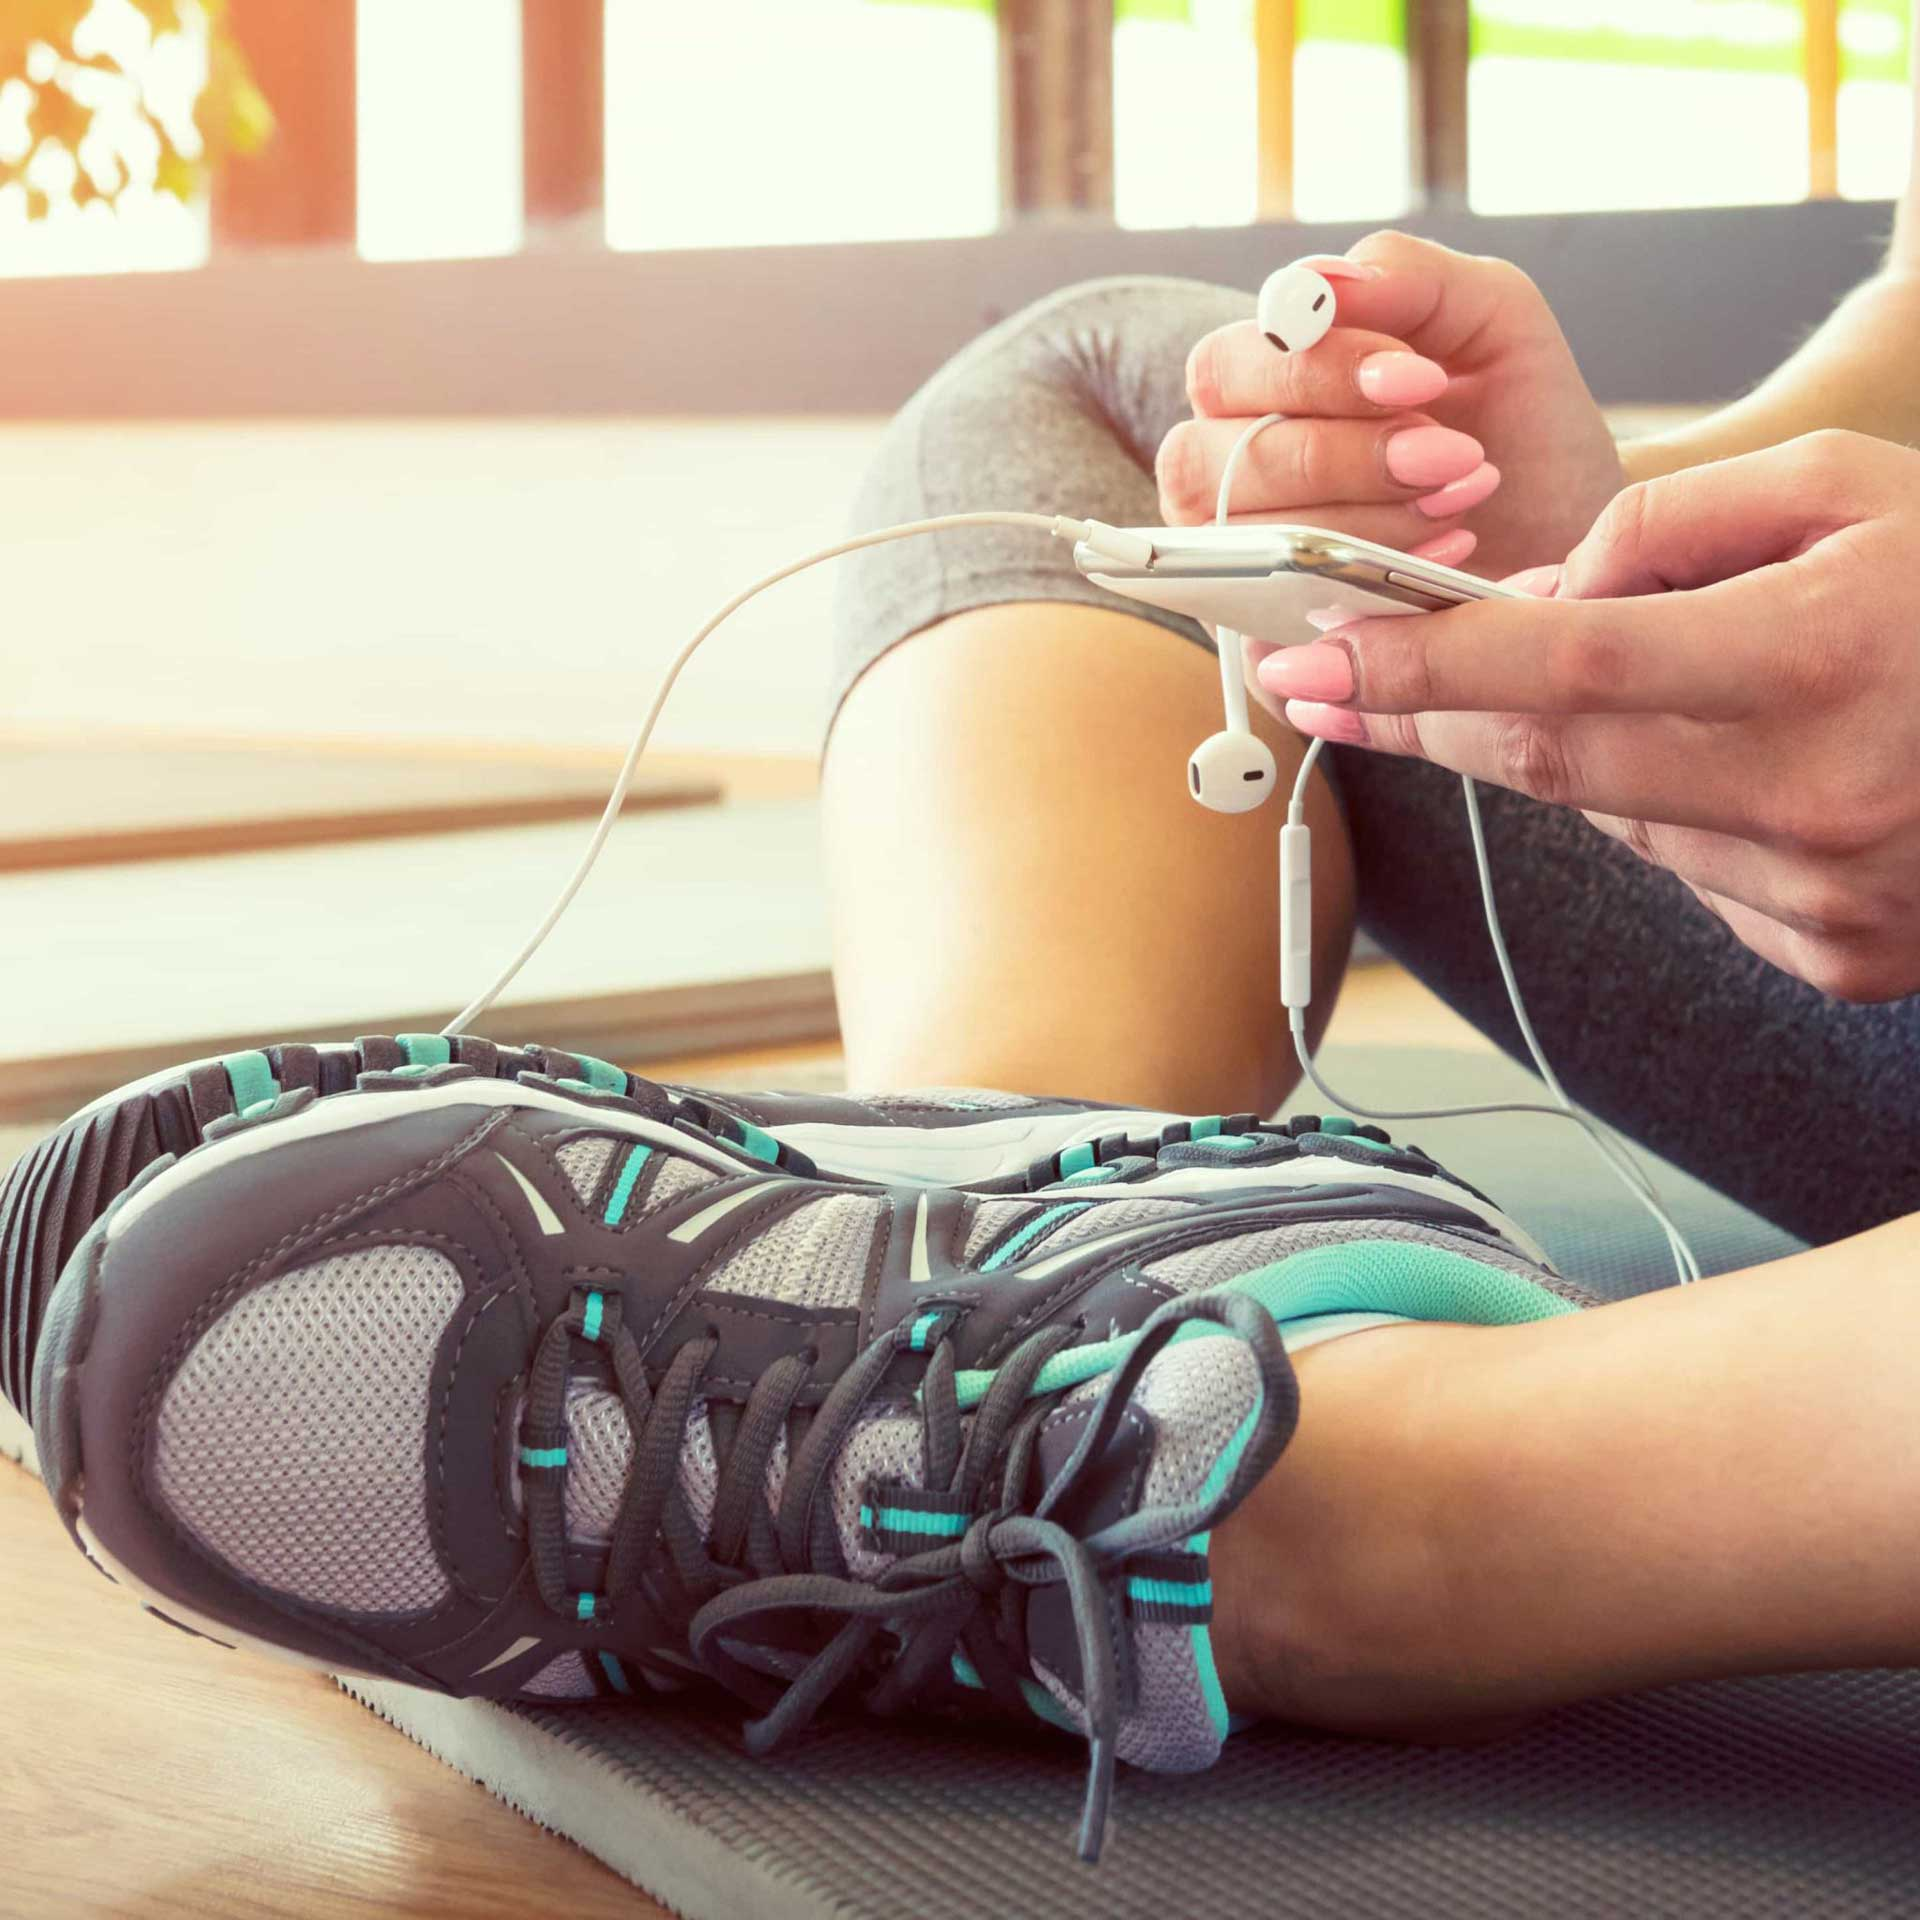 Female fitness person putting on her earphones